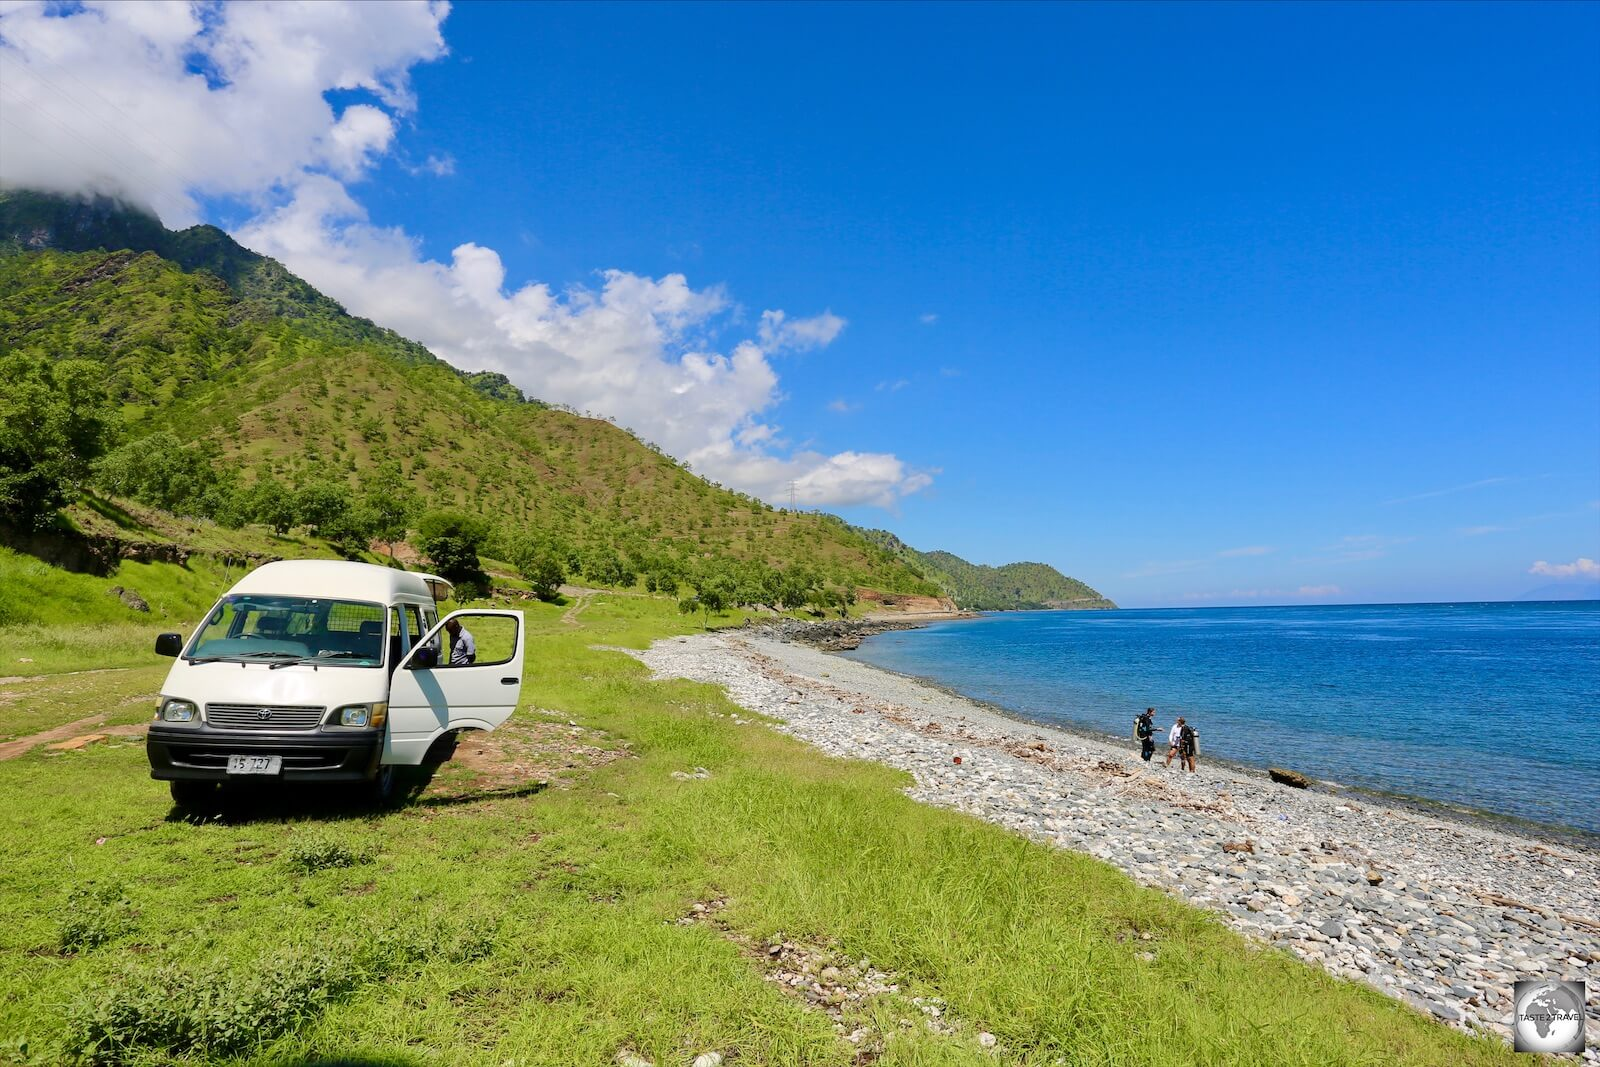 A view of the Dive Timor van parked on the beach at the 'Dirt Track' dive site.